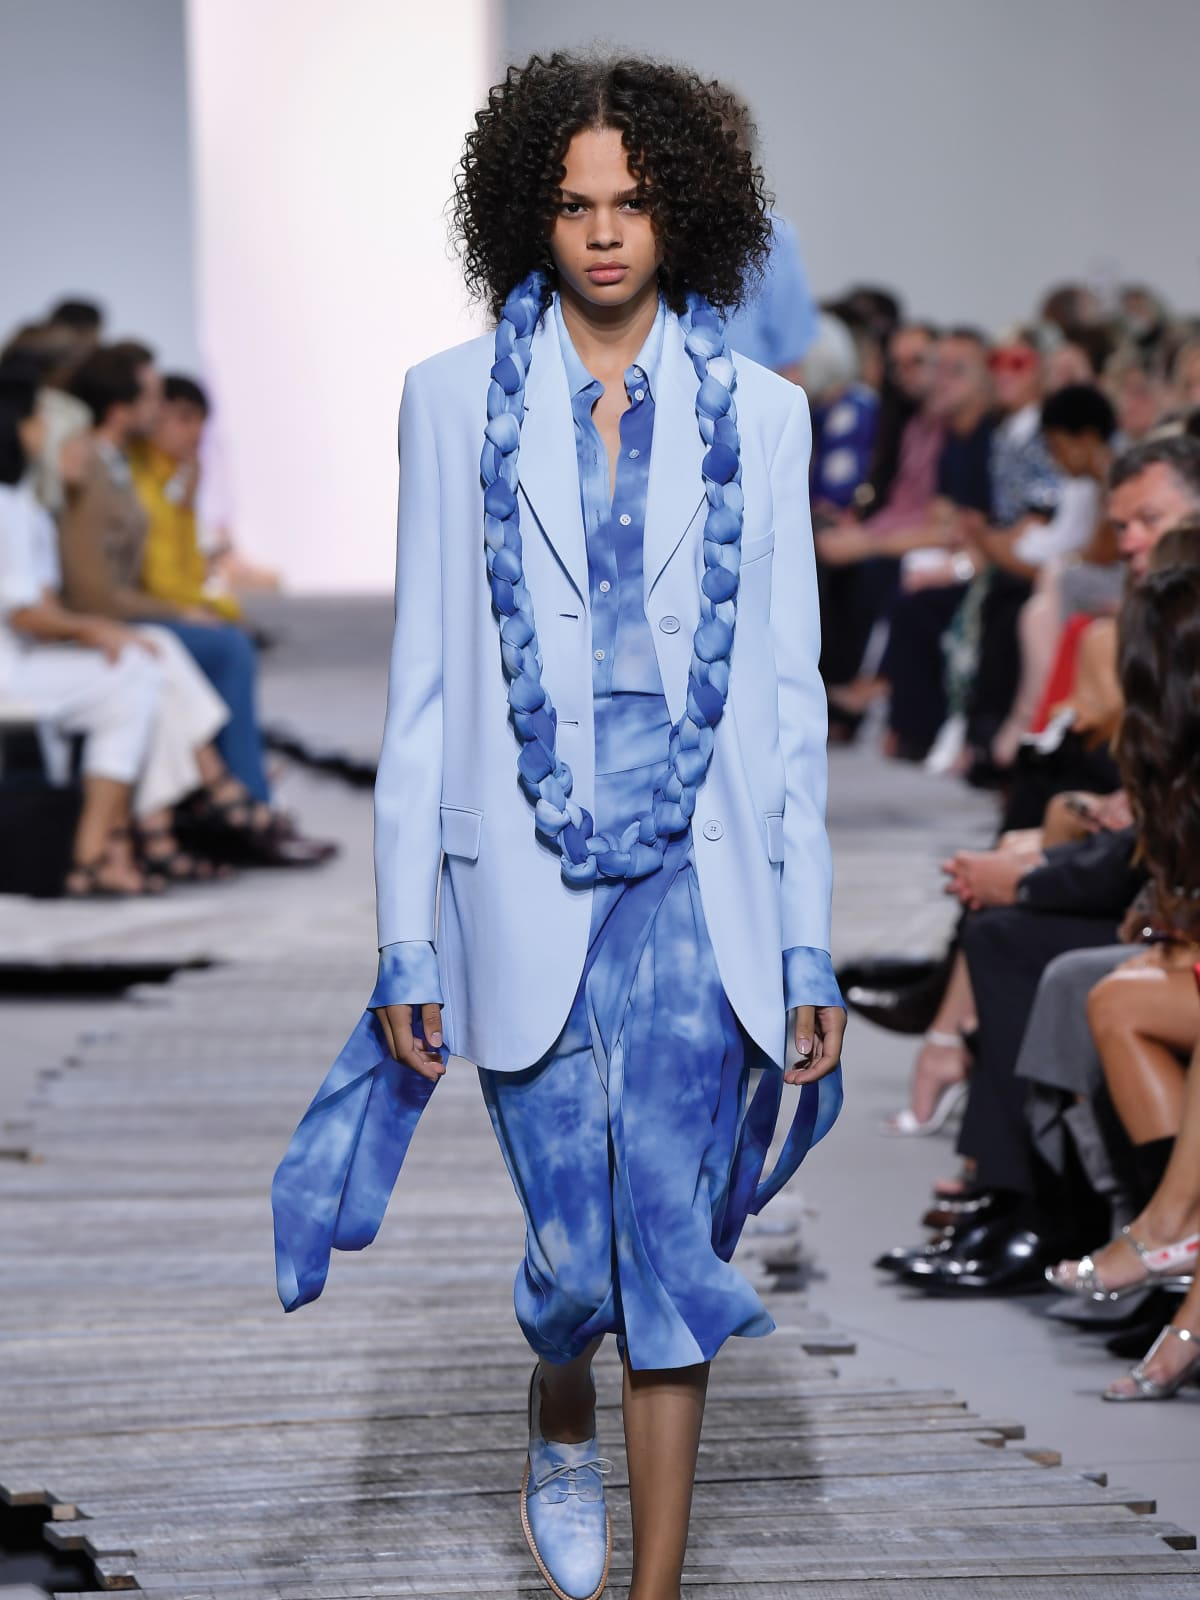 Michael Kors Collection look 9 spring 2018 New York Fashion Week